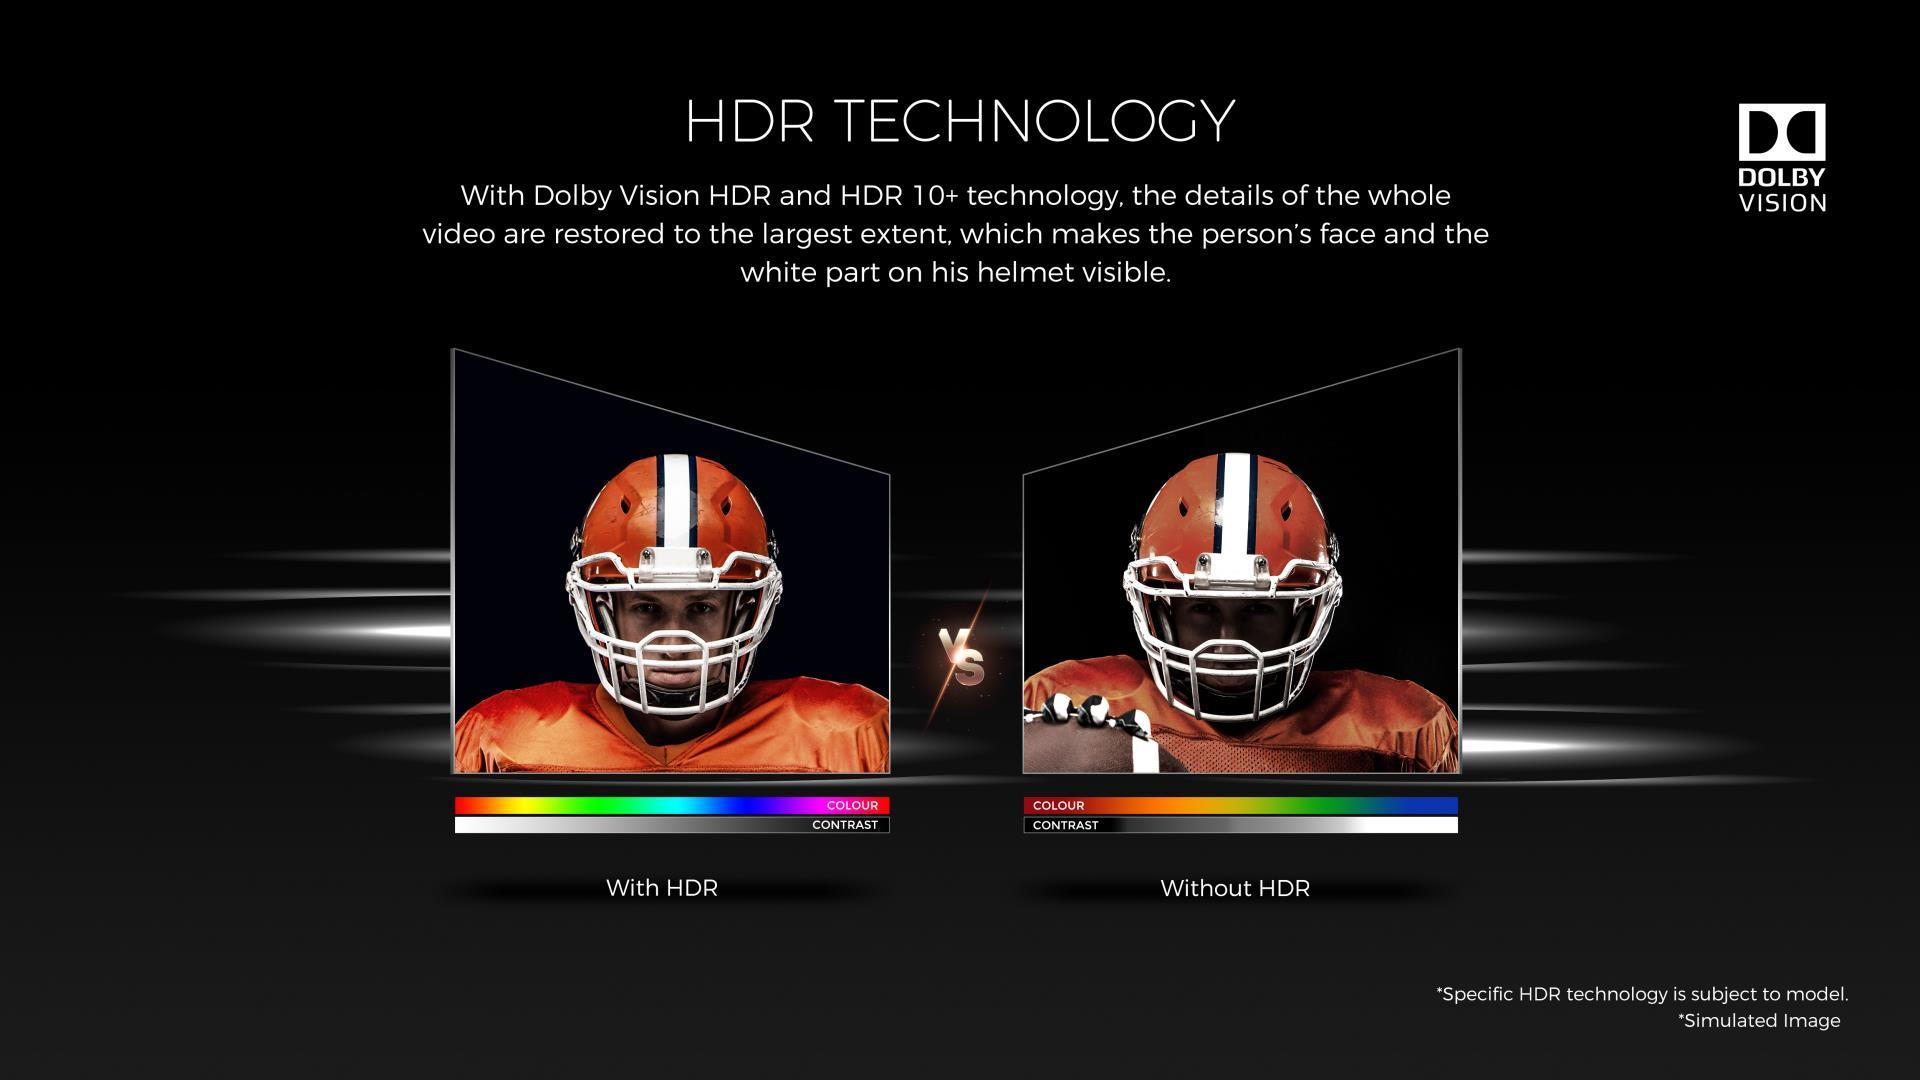 4.1 hdr technology